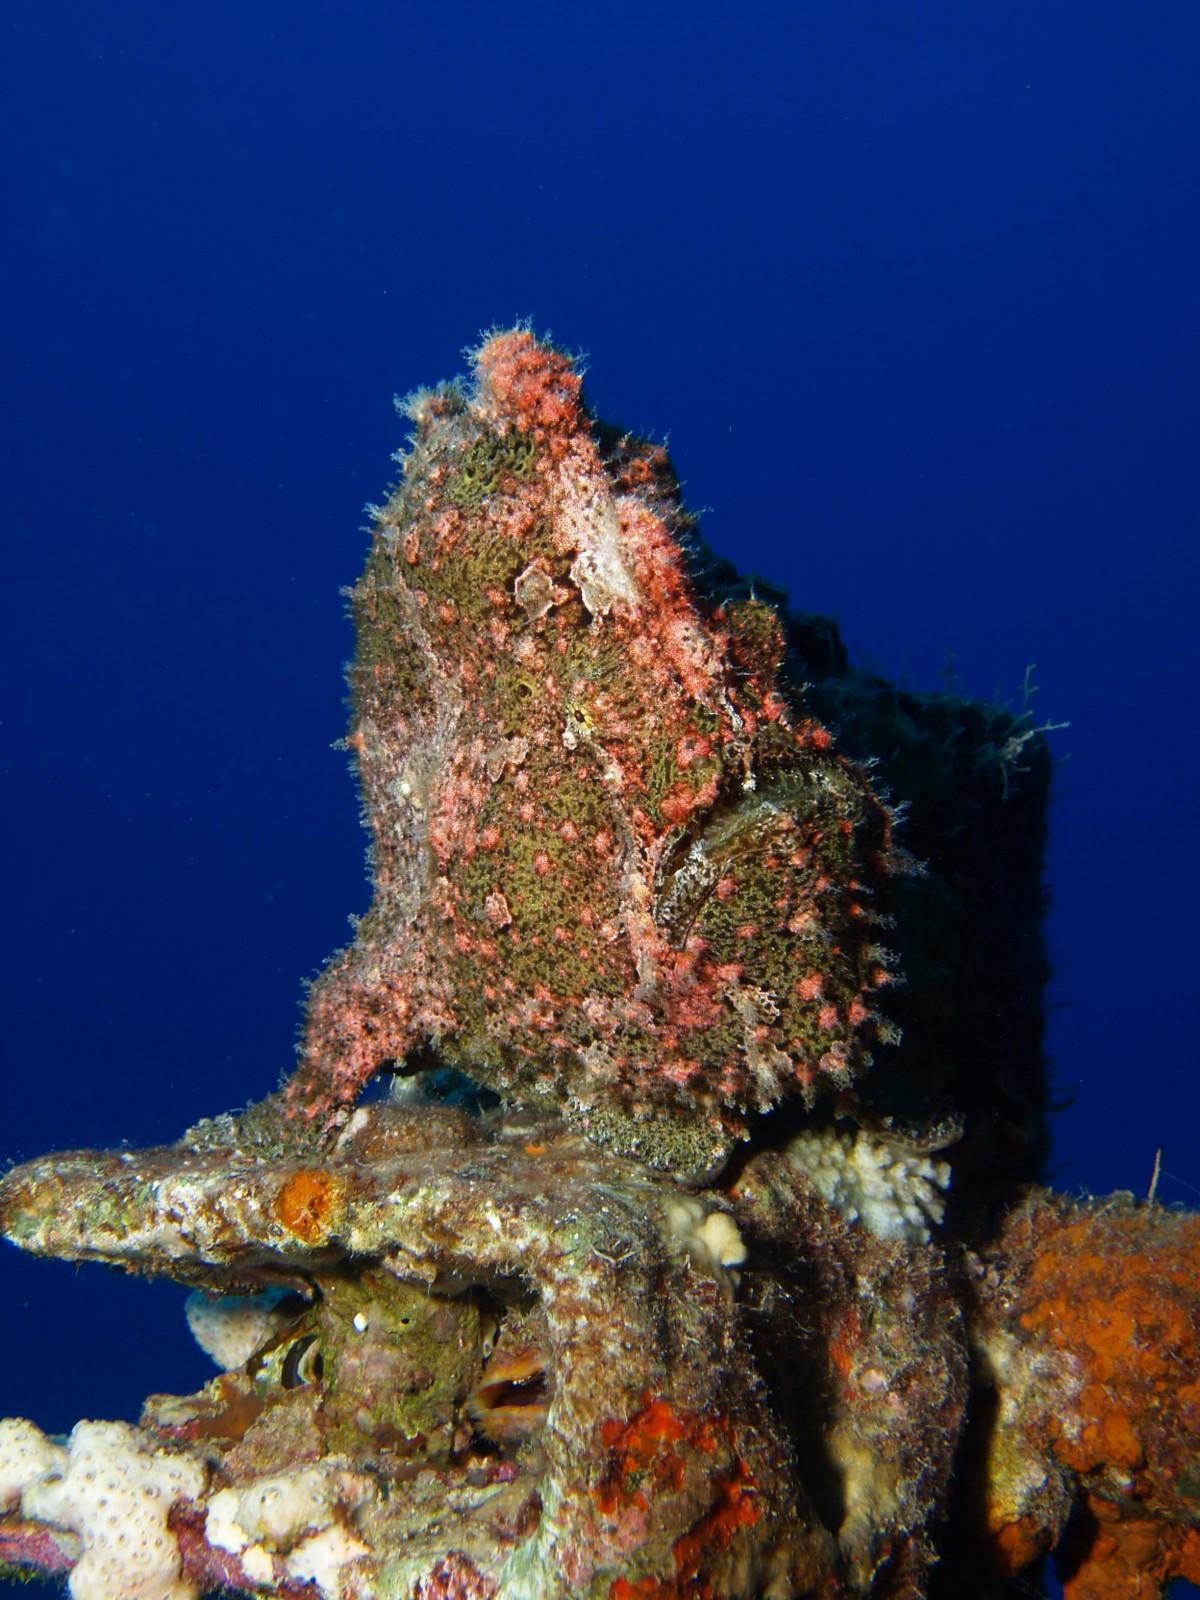 10 reasons to dive the Egyptian Red Sea (2)